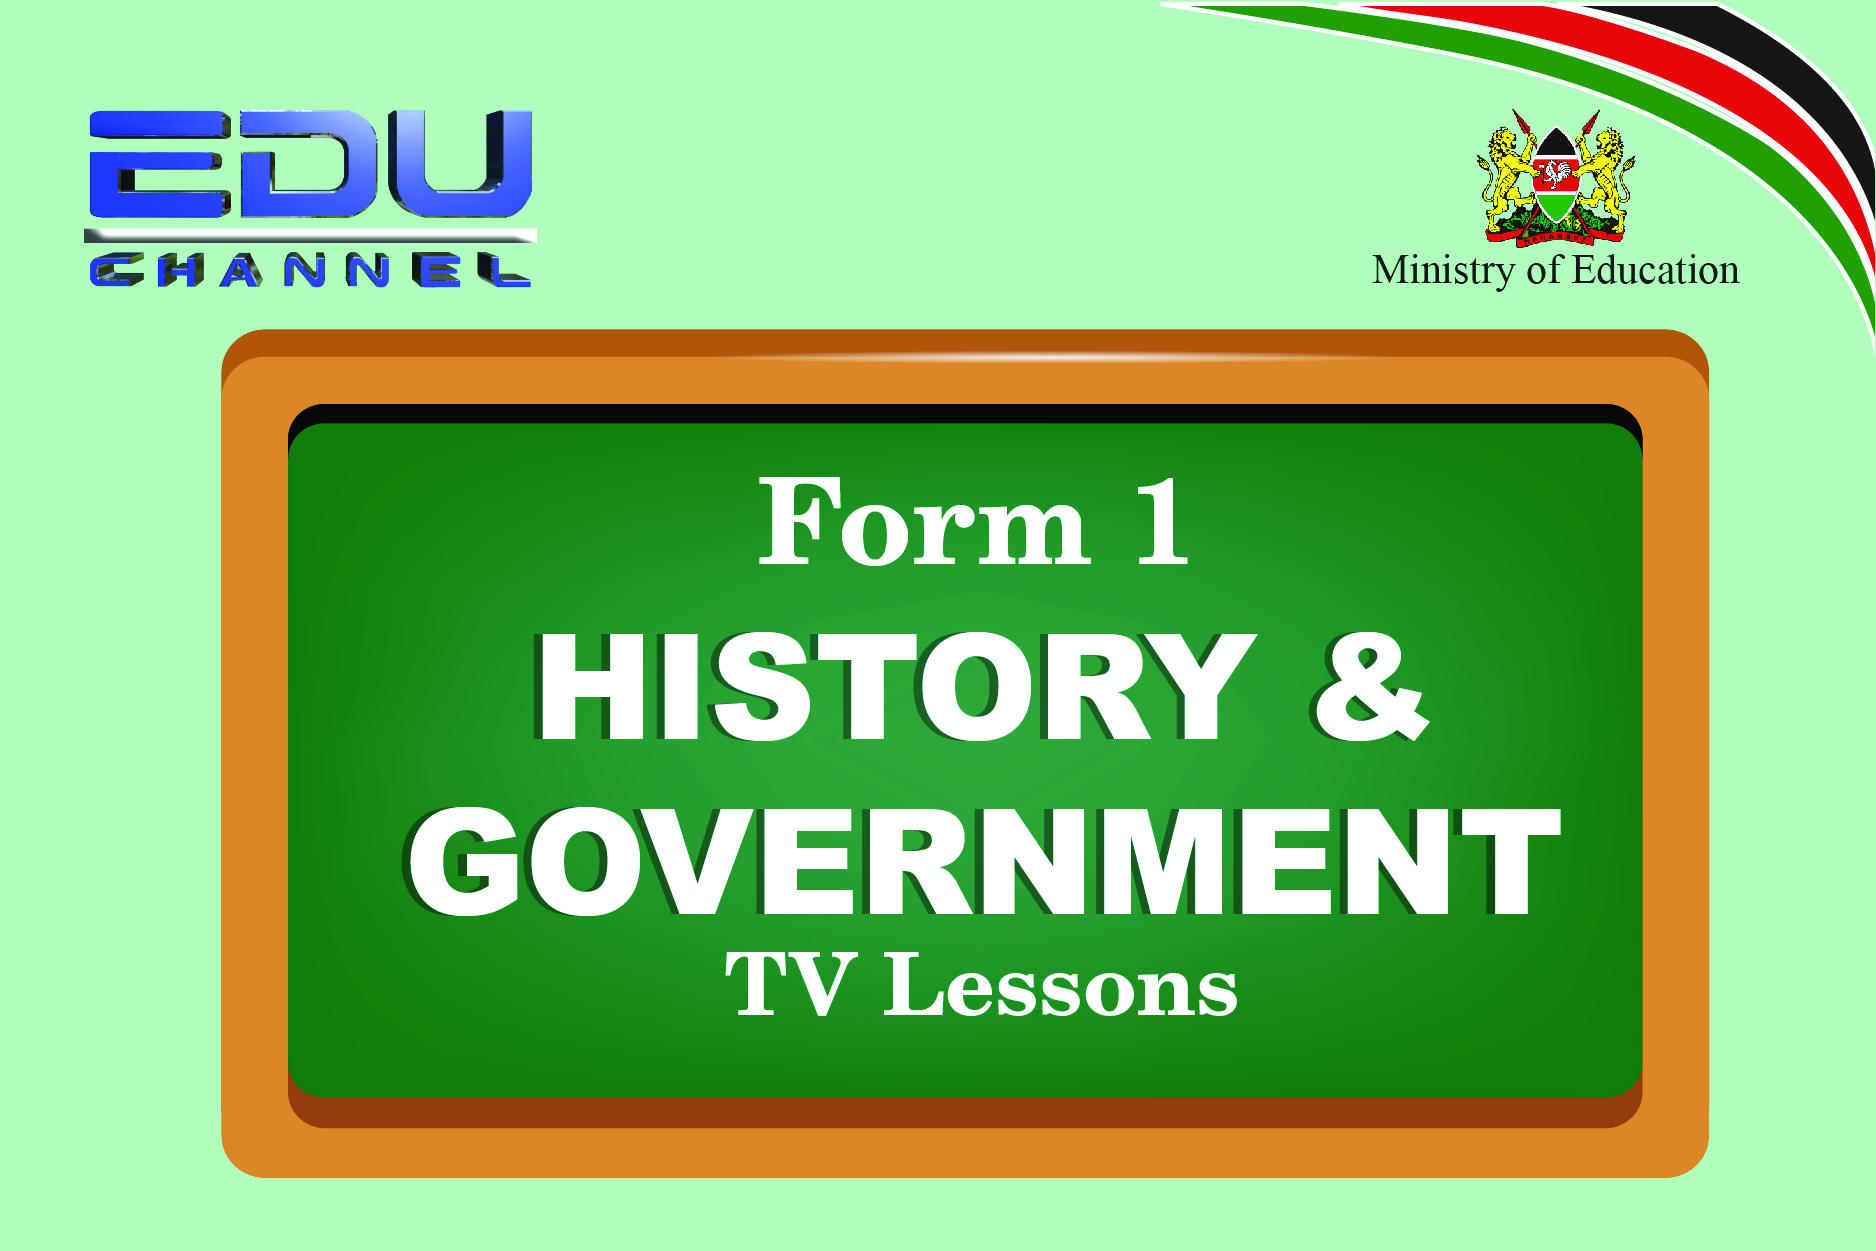 History and Government  Lesson 2: Sources of Information